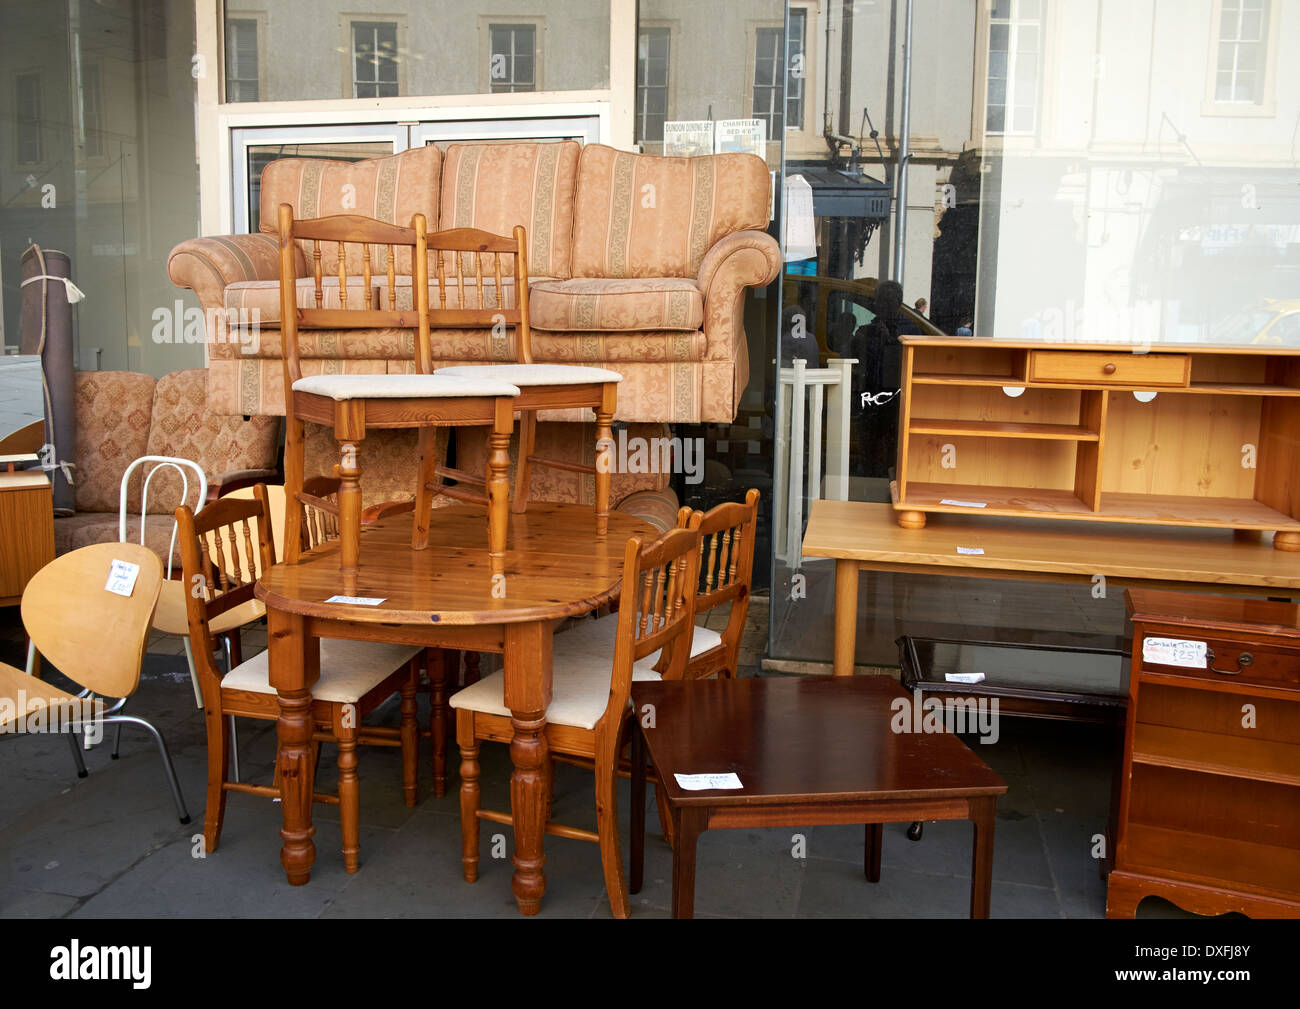 Gentil Used Second Hand Furniture On Sale On A UK High Street